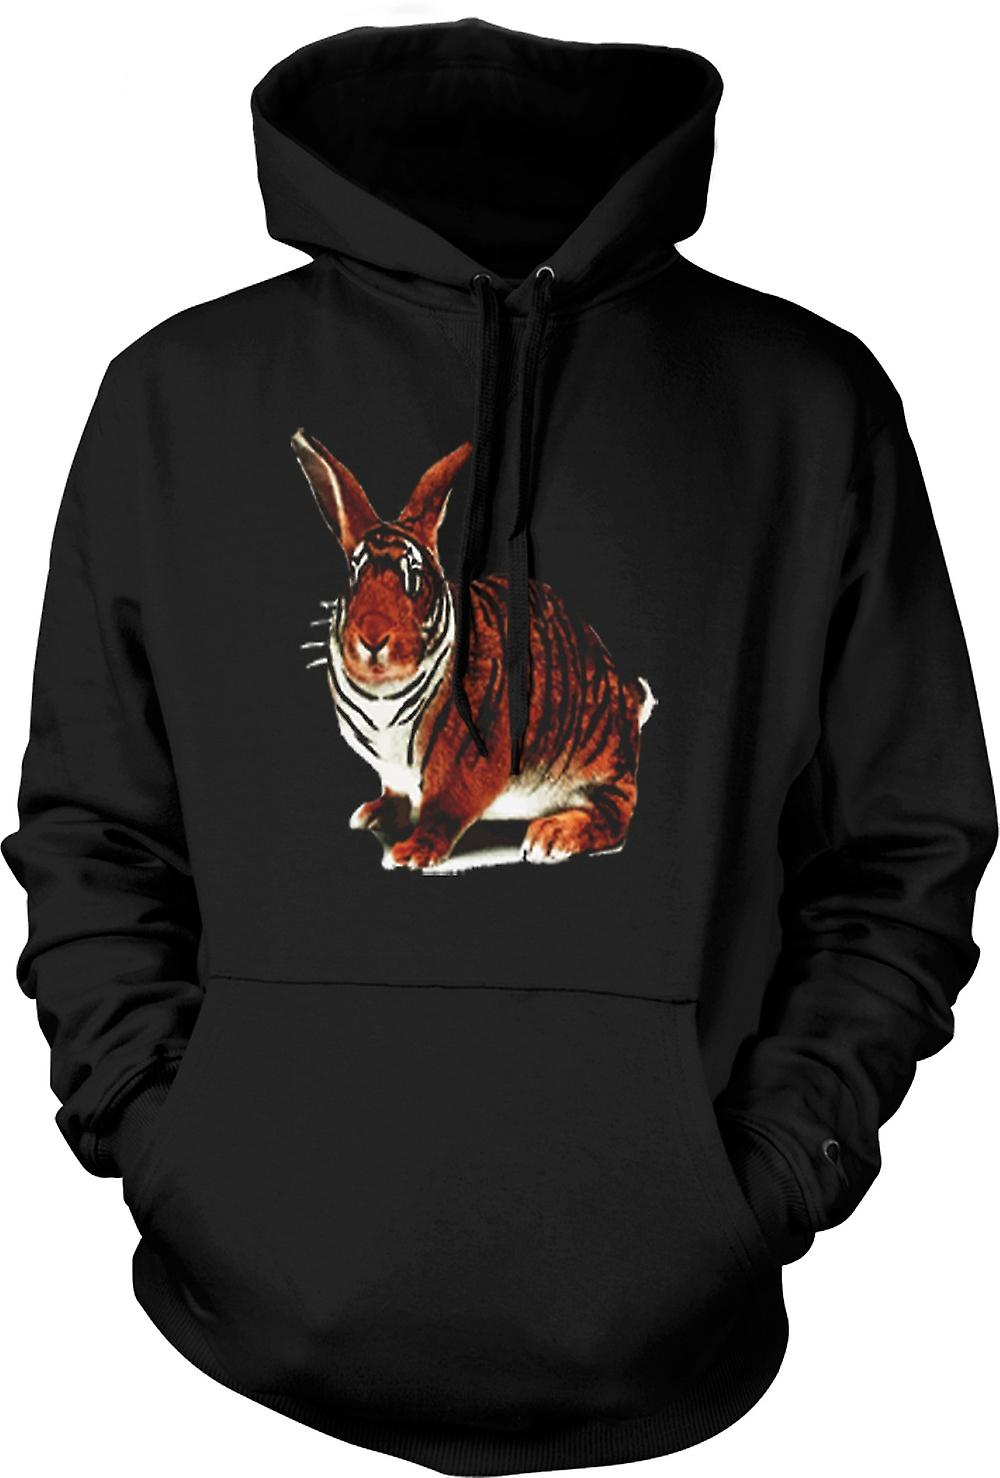 Mens Hoodie - Tiger Rabbit Pop-Art Design